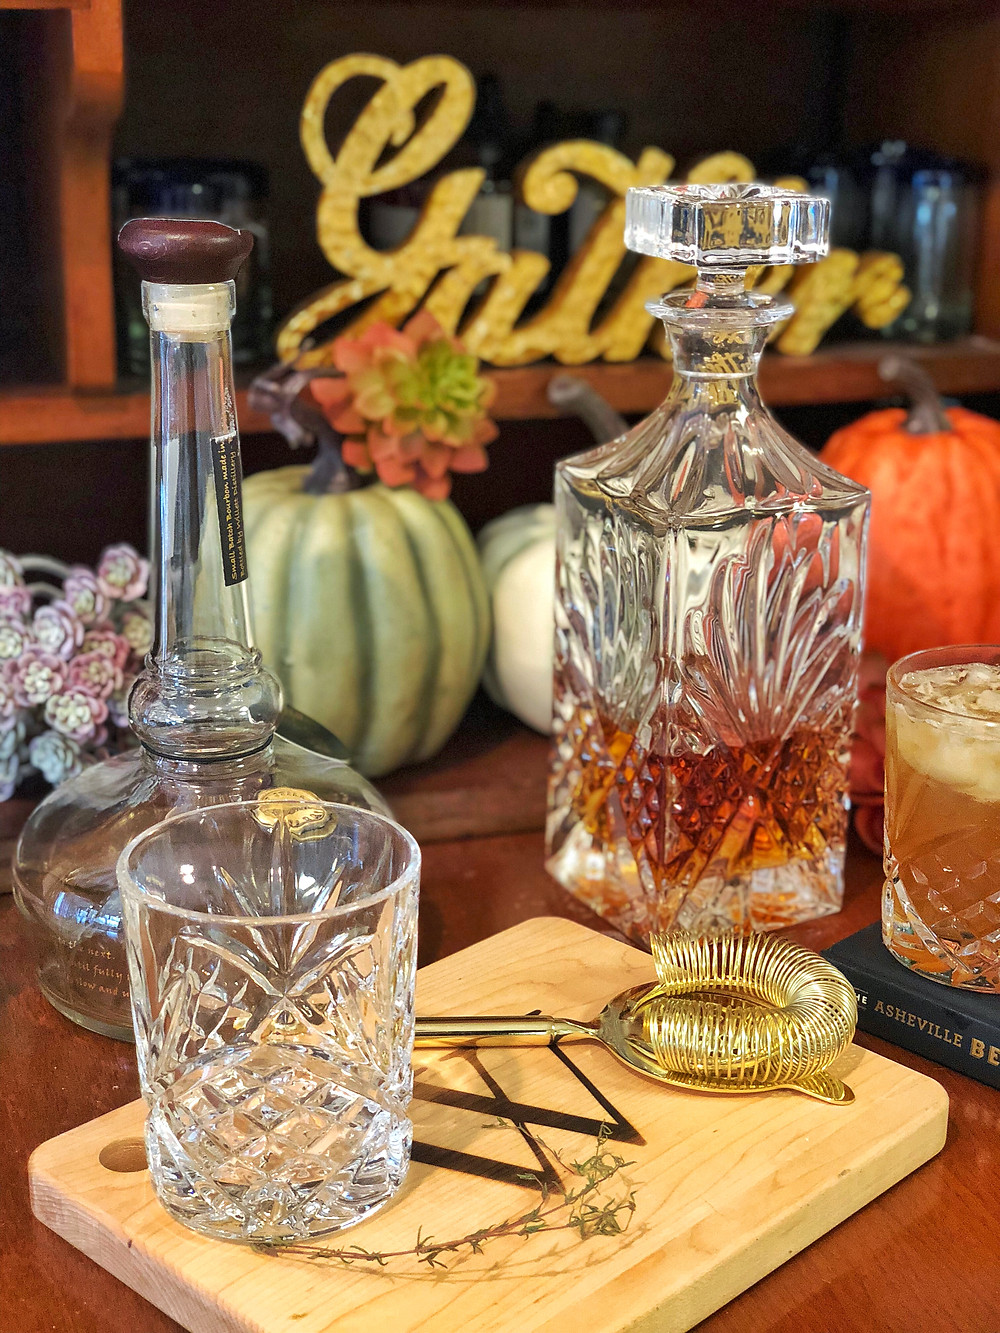 Bourbon decanter and highball glass sit on monogrammed cutting board.